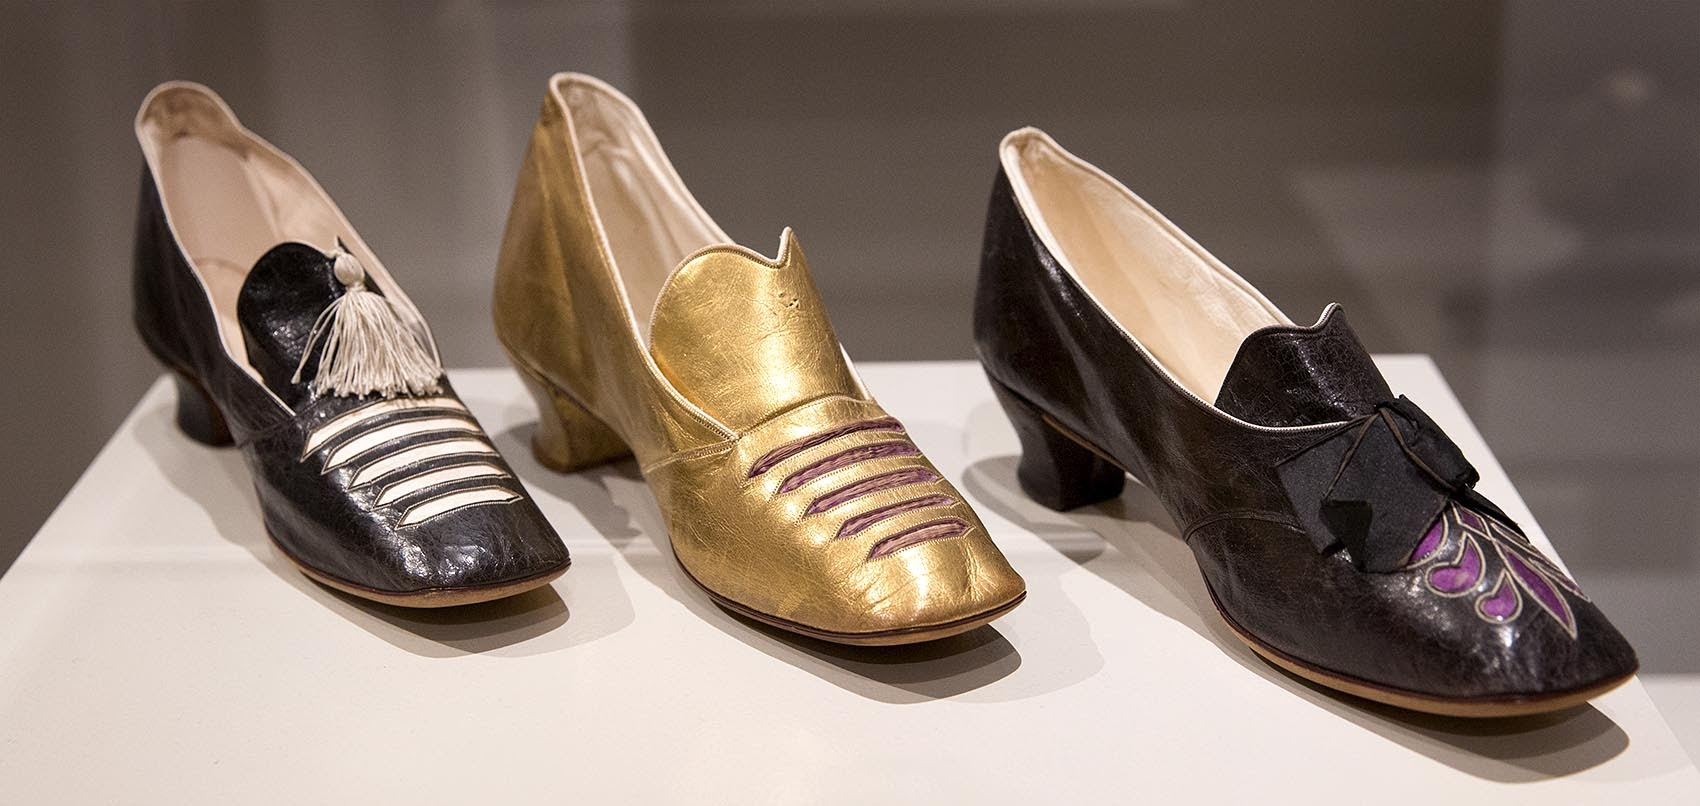 shoes college essay What you don't get a second chance at though, is your college application essay  put yourself in the admissions officer's shoes, sitting at a desk.